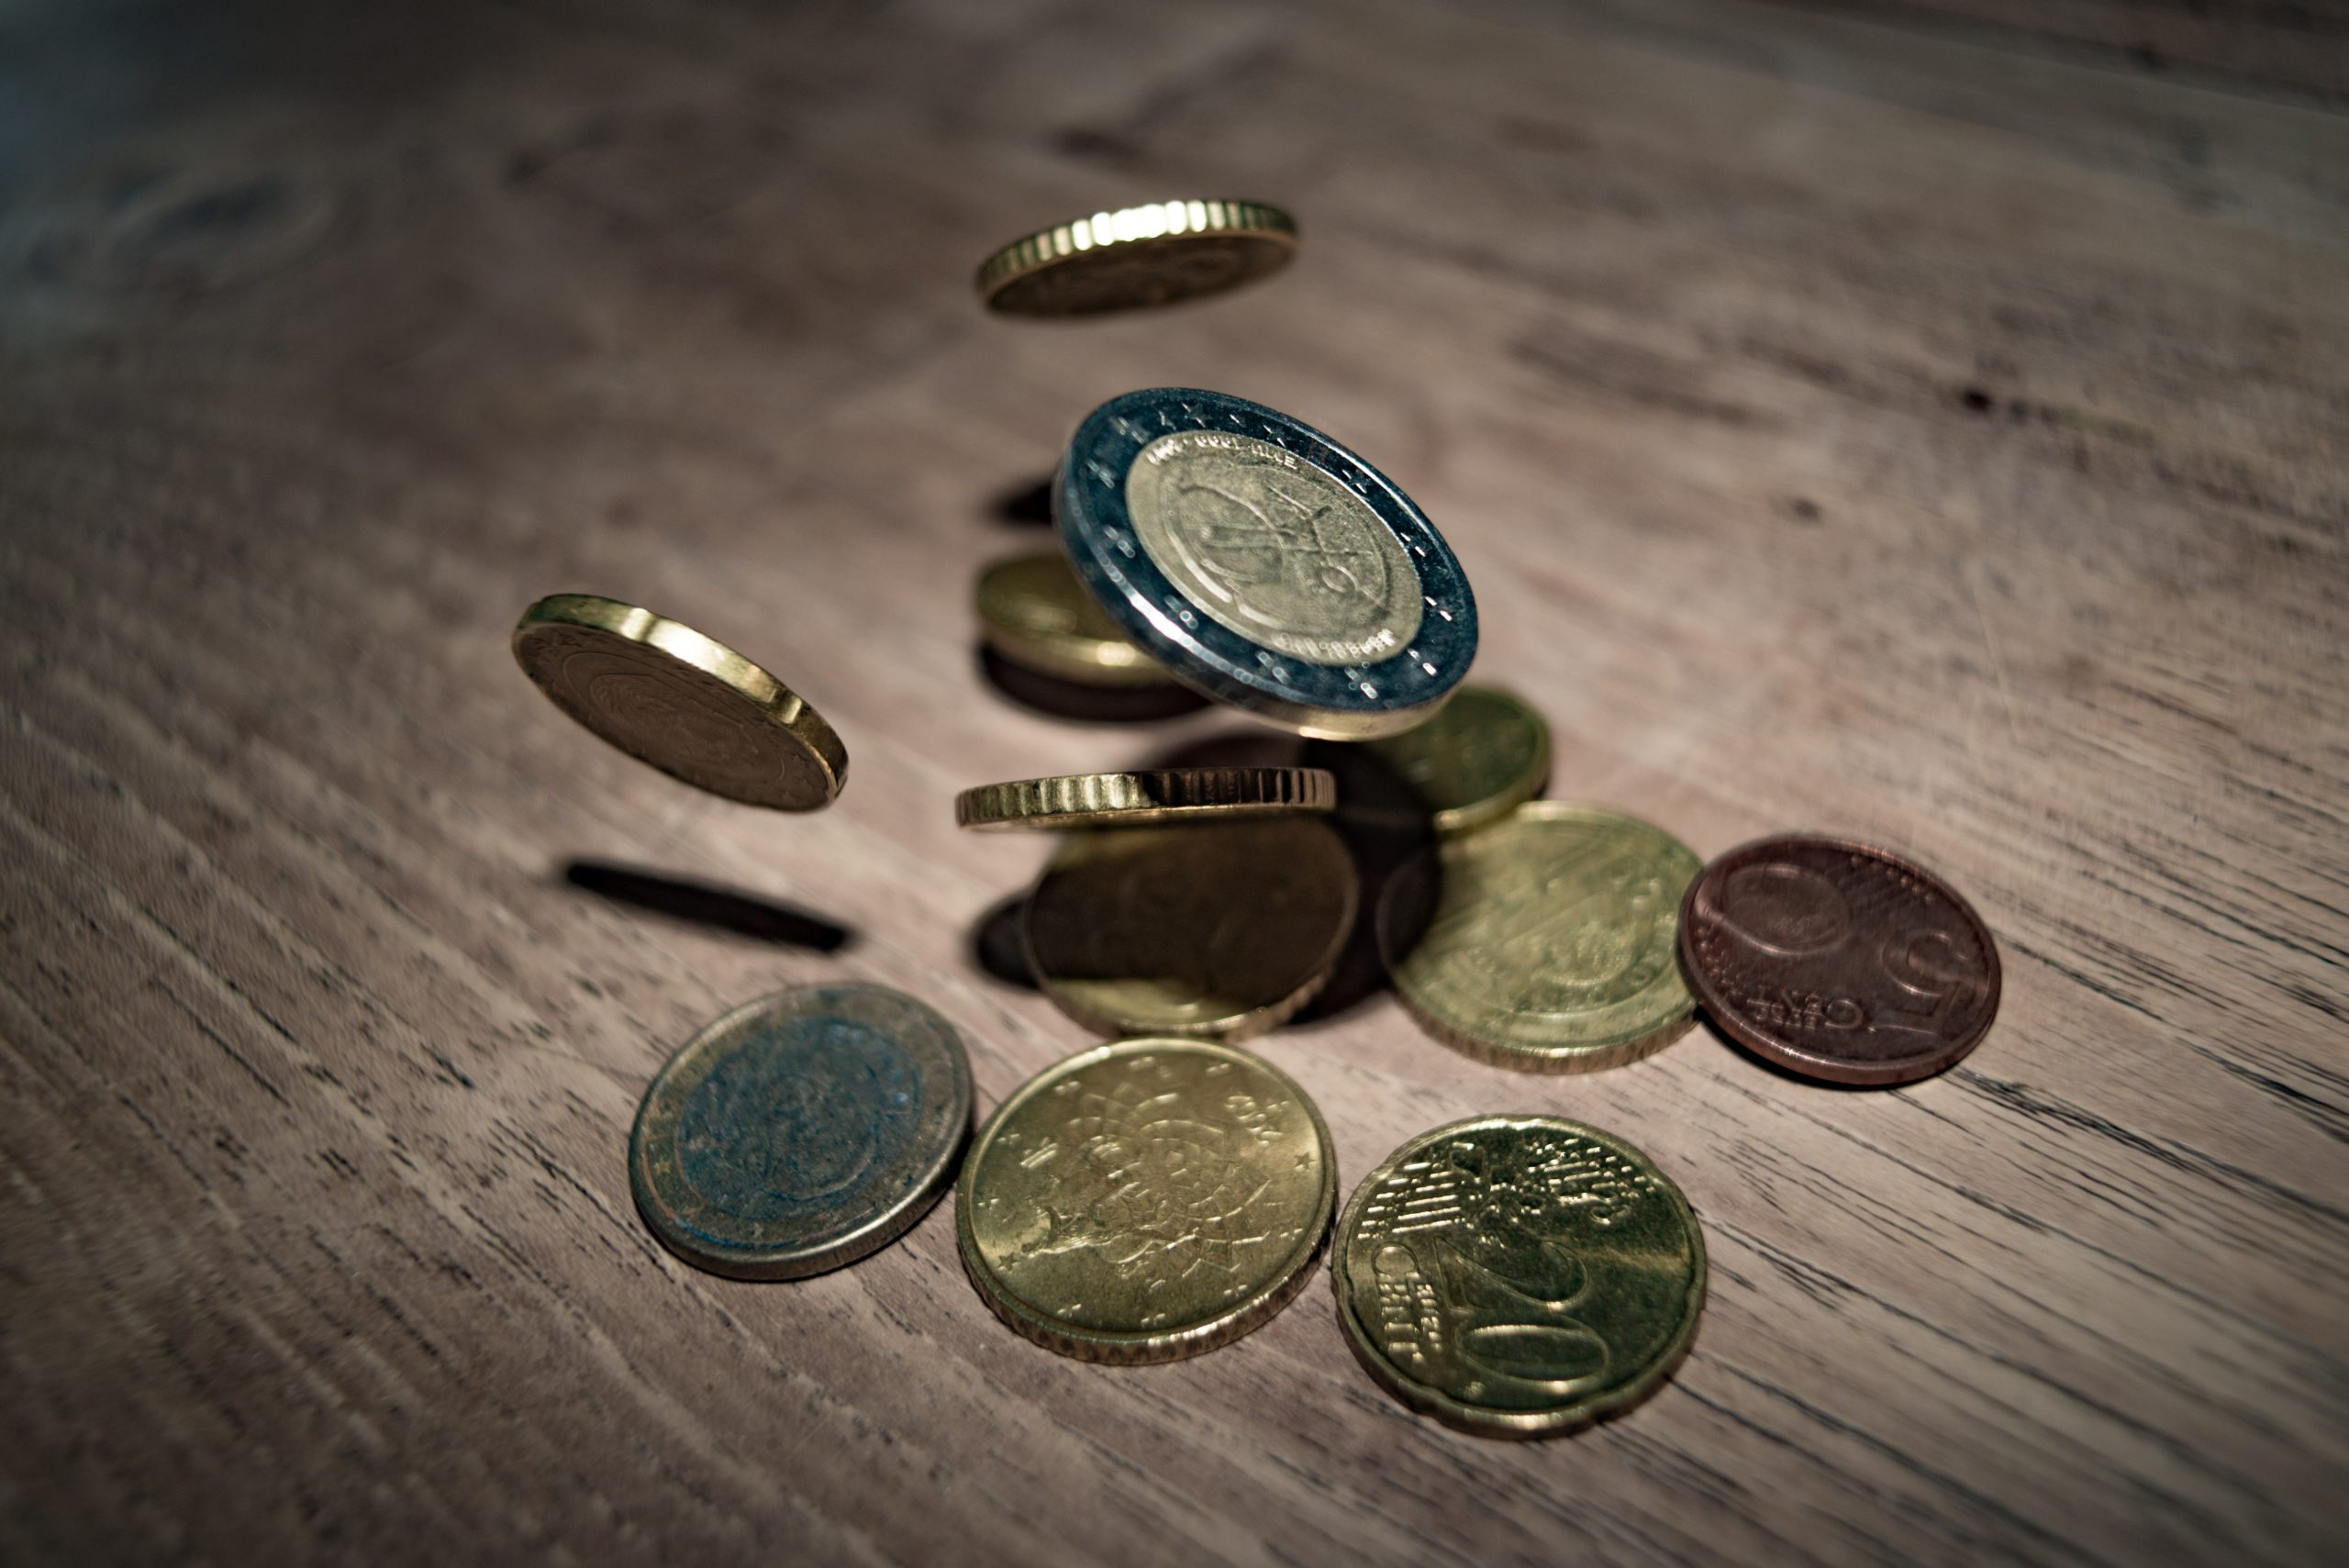 coins-onthe-table